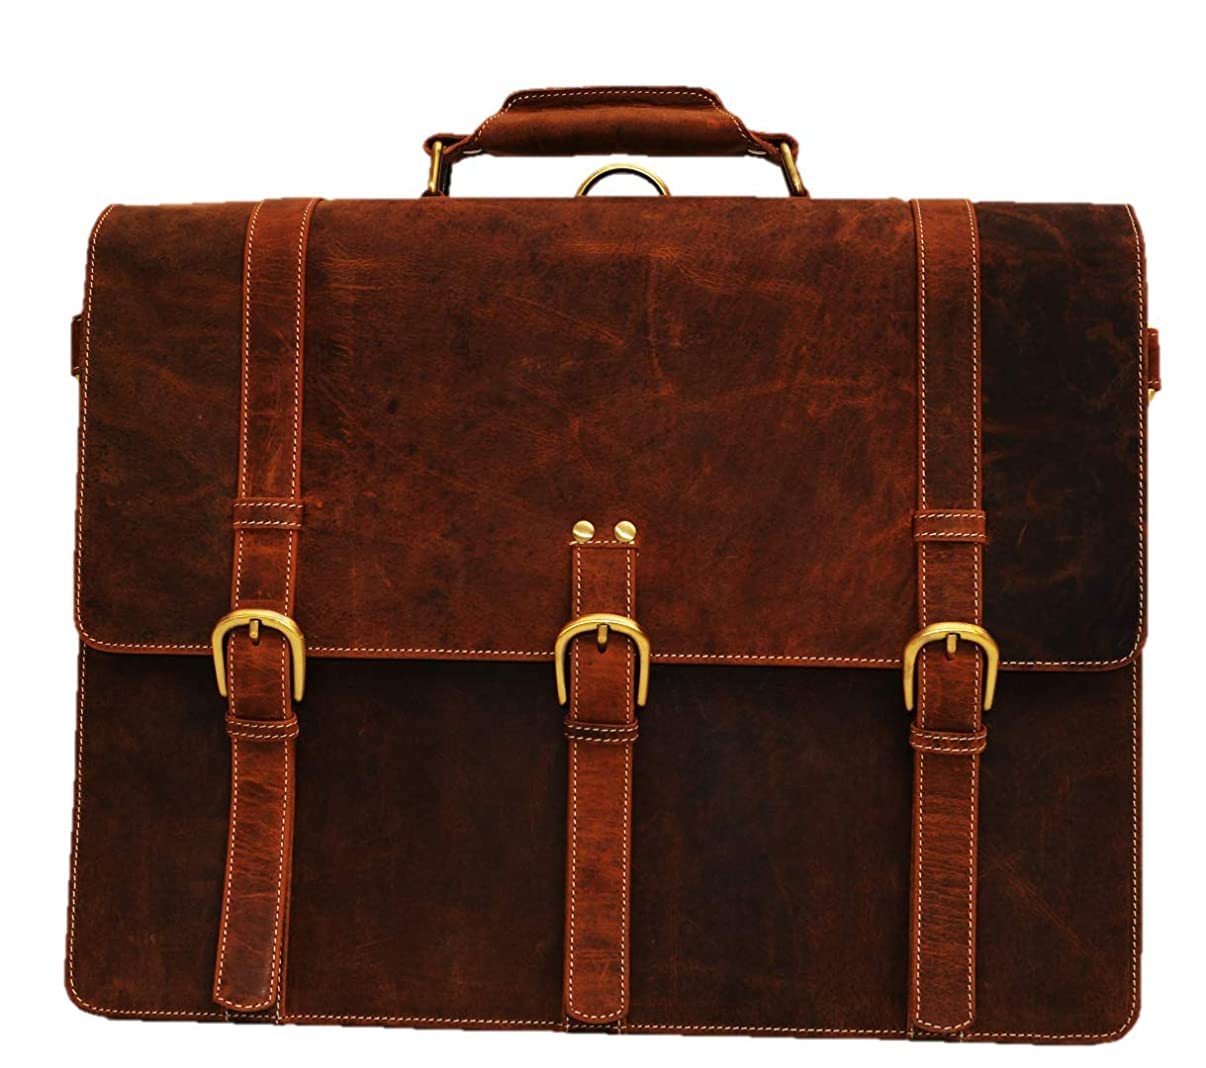 Mens Messenger Bag 17 Inch Vintage Genuine Leather Briefcase Large Satchel Shoulder Bag Rugged Leather Computer Laptop Bag, Brown